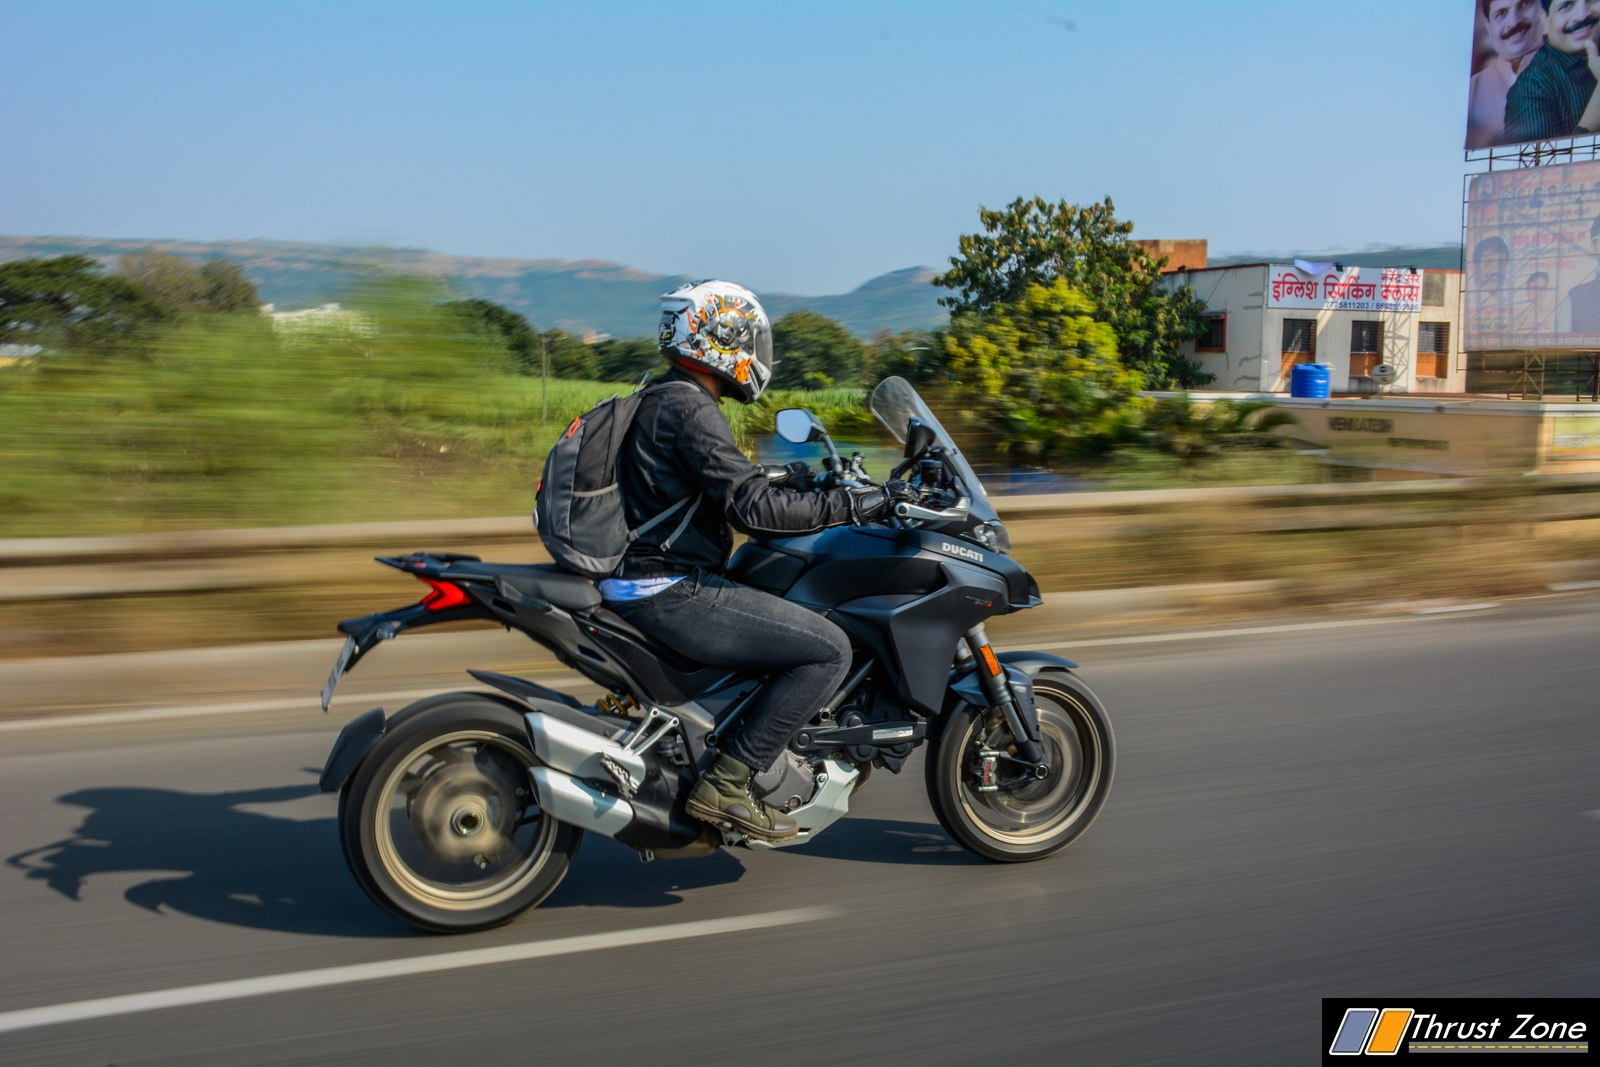 https://www.thrustzone.com/wp-content/uploads/2018/11/2018-Ducati-Multistrada-1260-India-Review-26.jpg